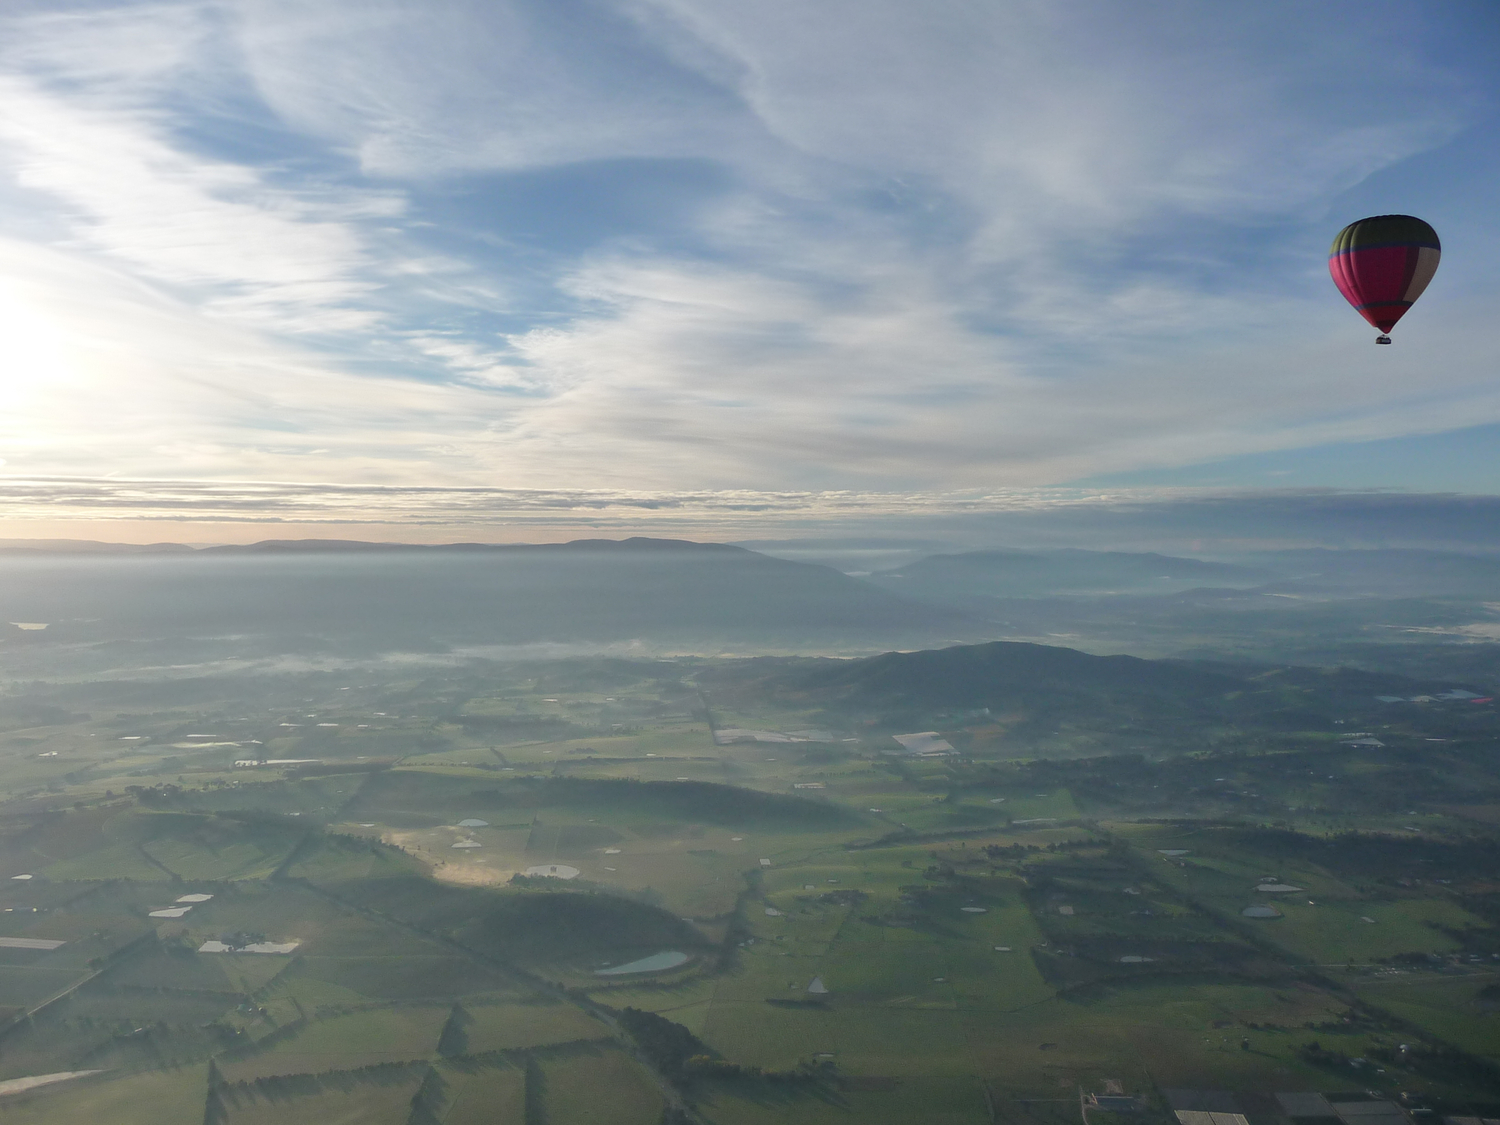 Hot+air+balloon+over+Yarra+Valley.jpeg